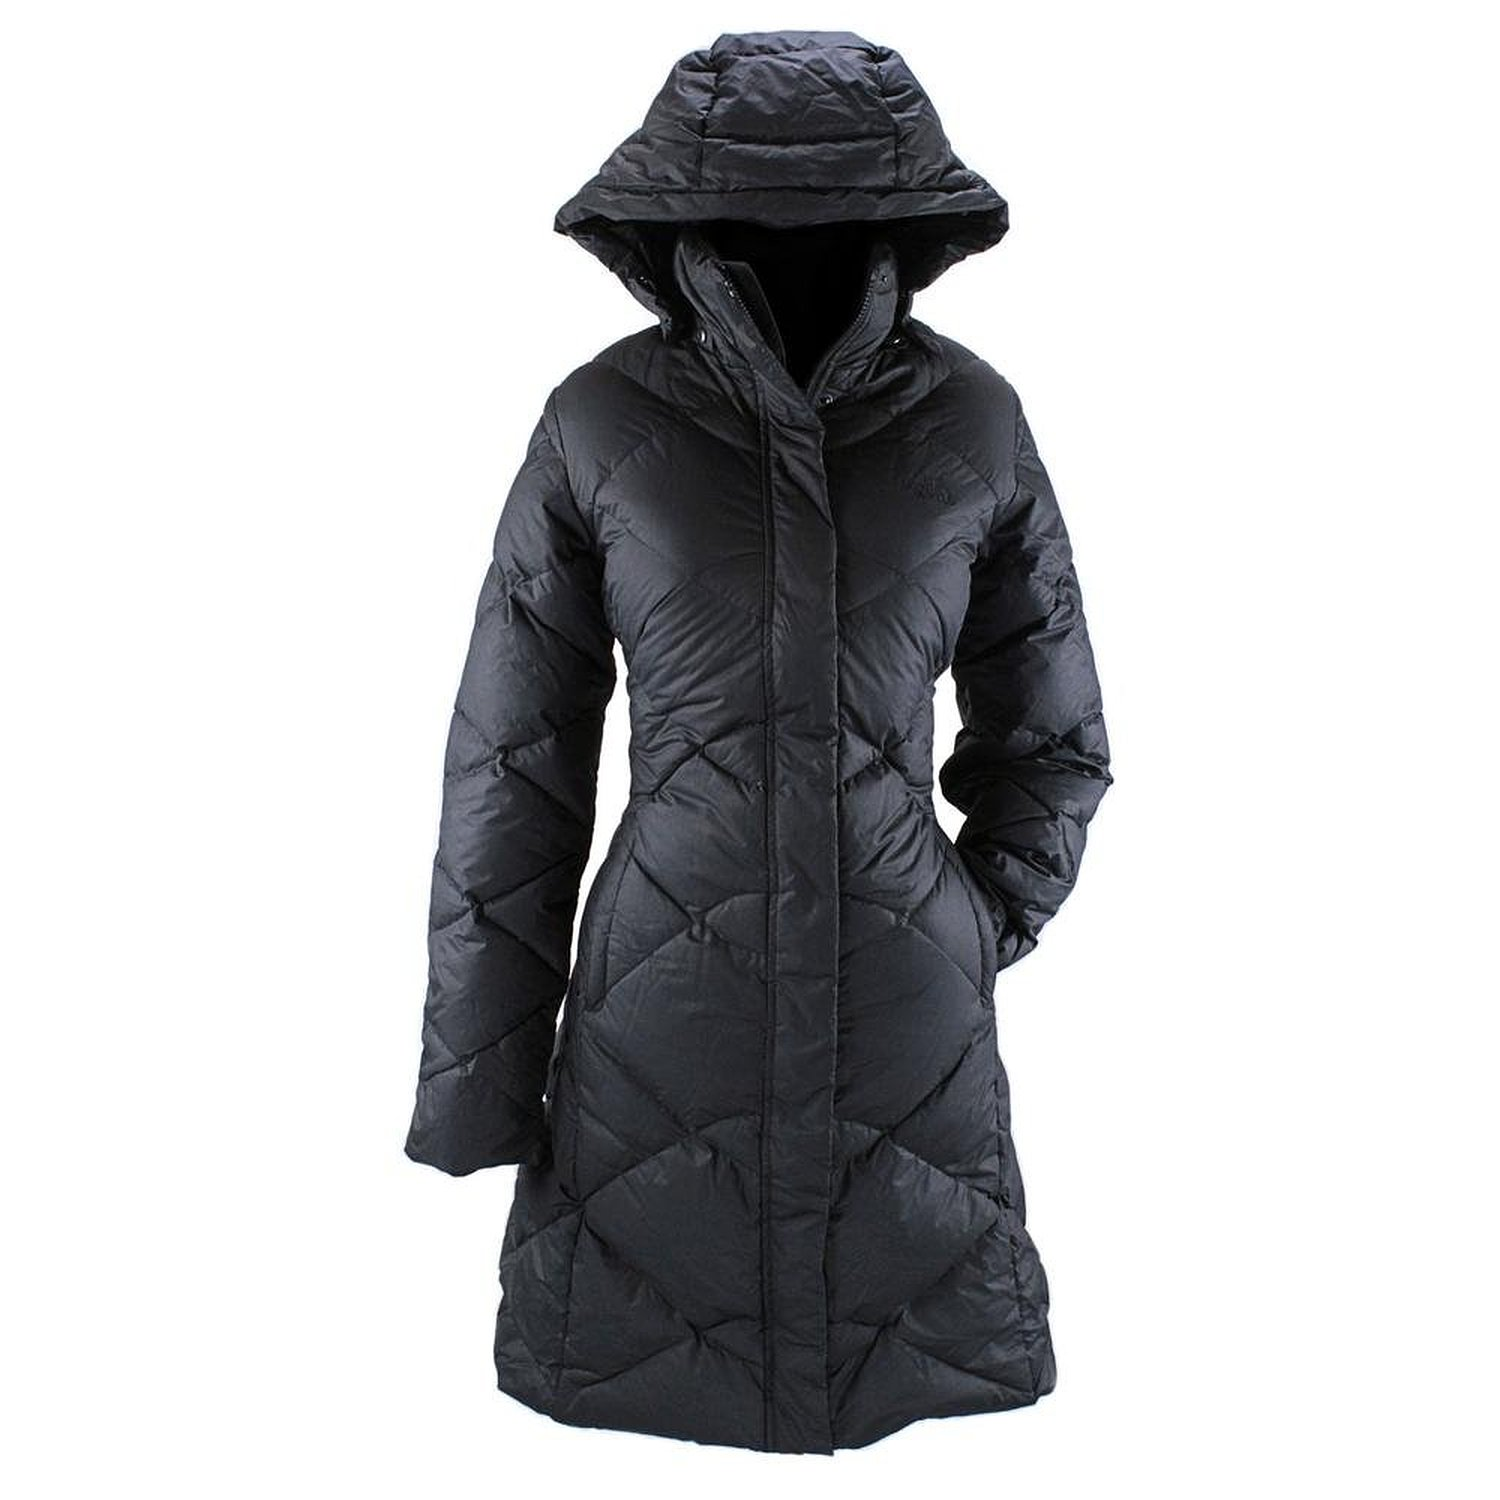 90f8133dc1 Cheap North Face Parka, find North Face Parka deals on line at ...